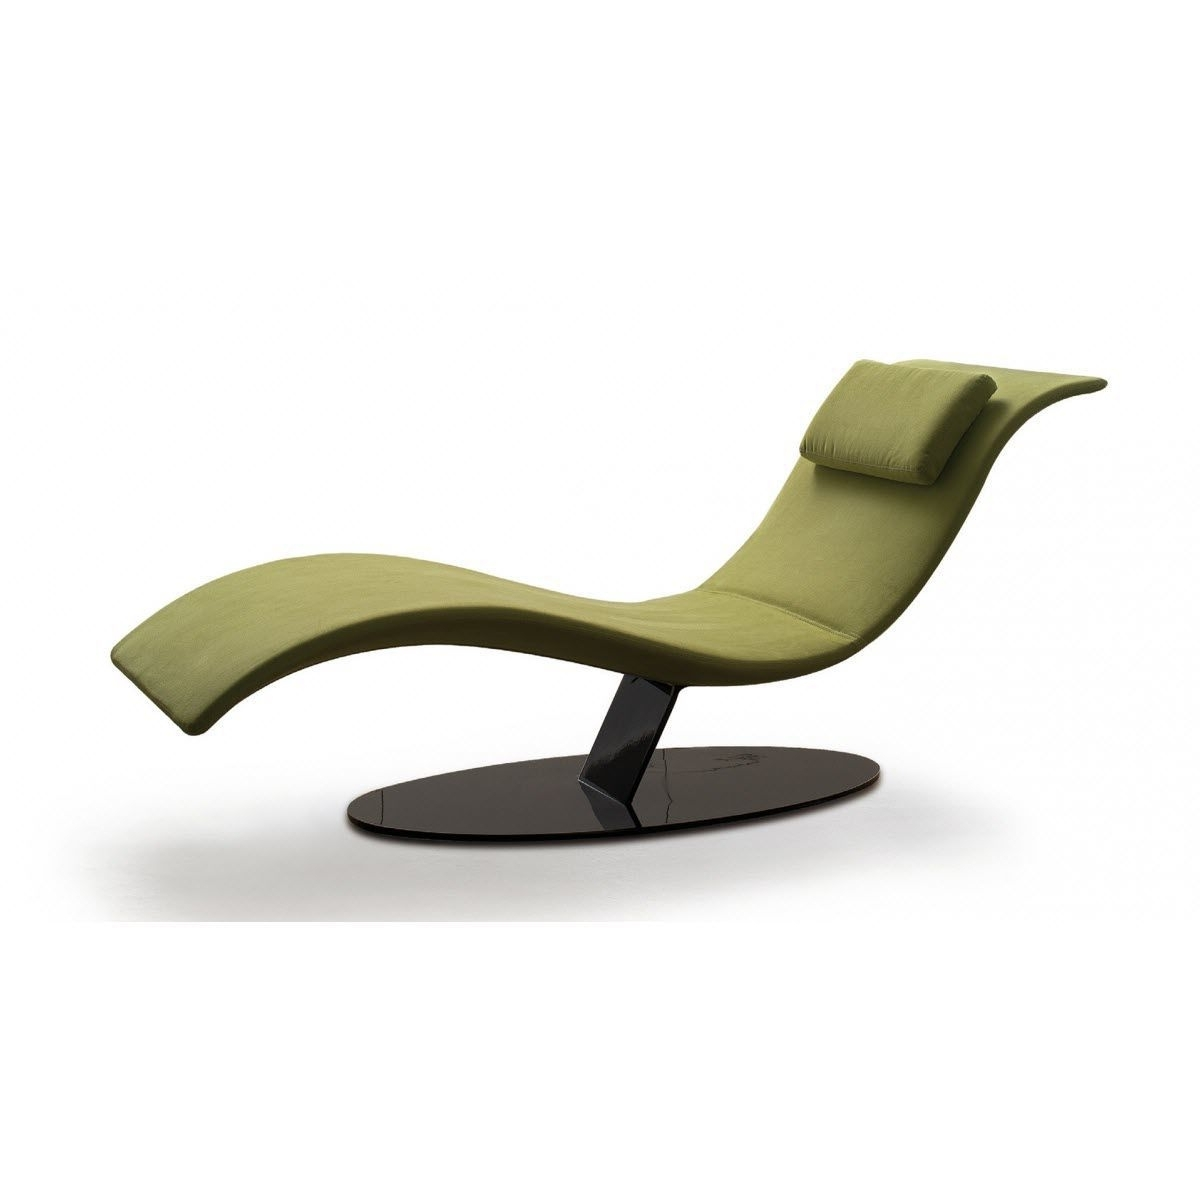 Popular Remarkable Contemporary Lounge Chair Pictures Design Ideas Within Contemporary Chaise Lounge Chairs (View 9 of 15)